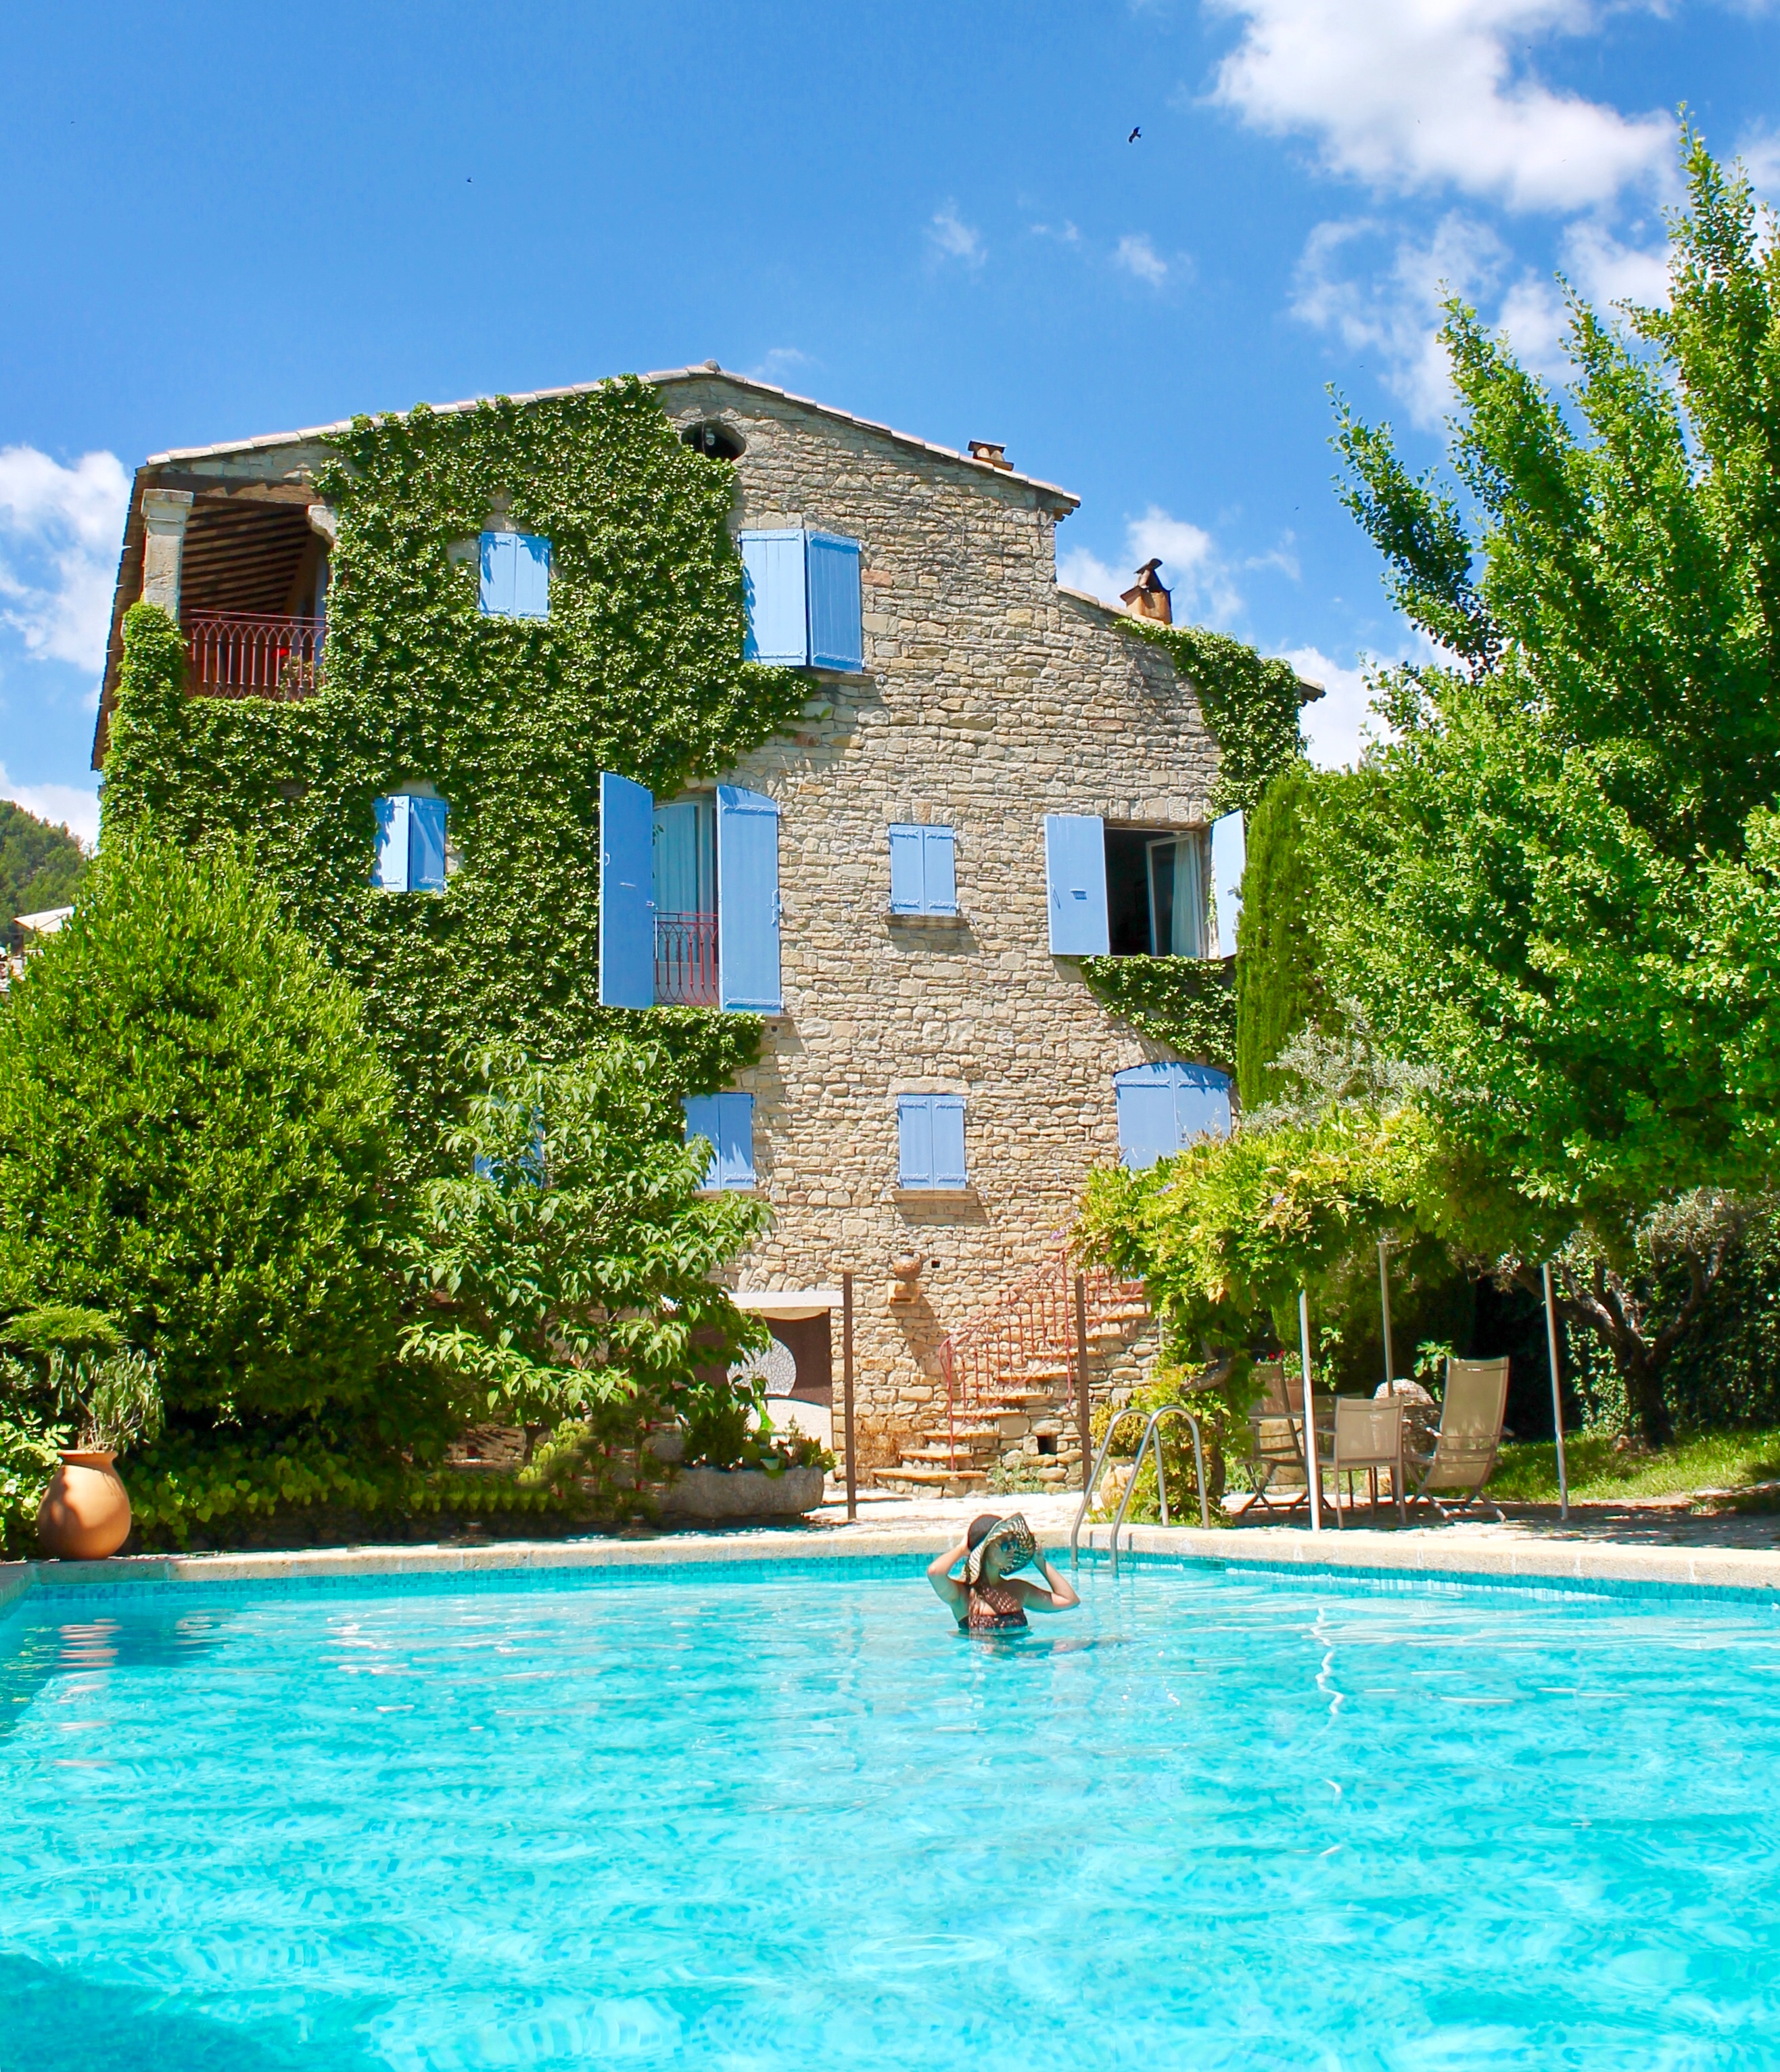 la-bonne-etape-luxury-provence-lustforthesublime